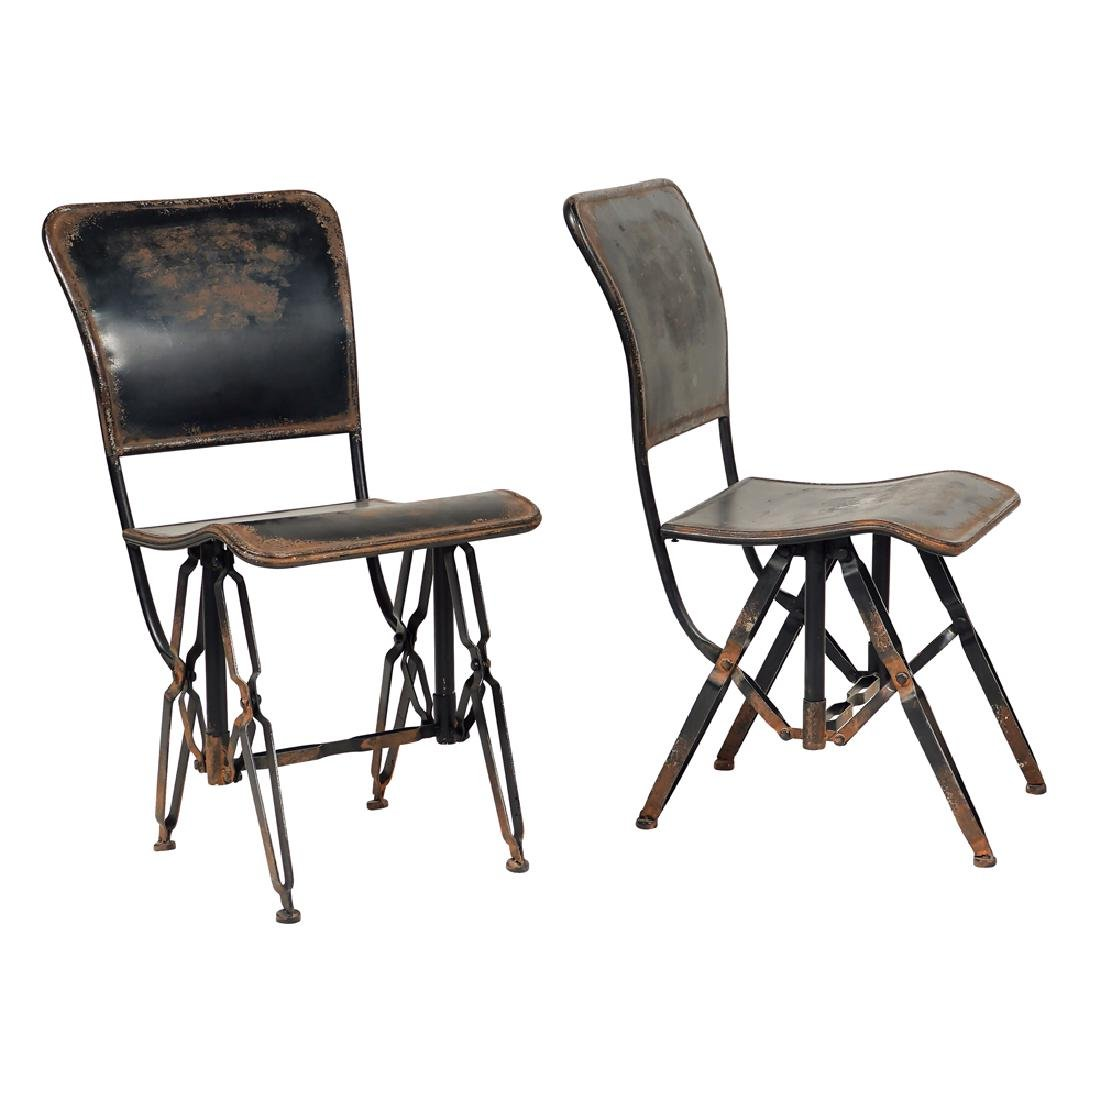 Pair of iron chairs 20th century 89x43x46 cm.